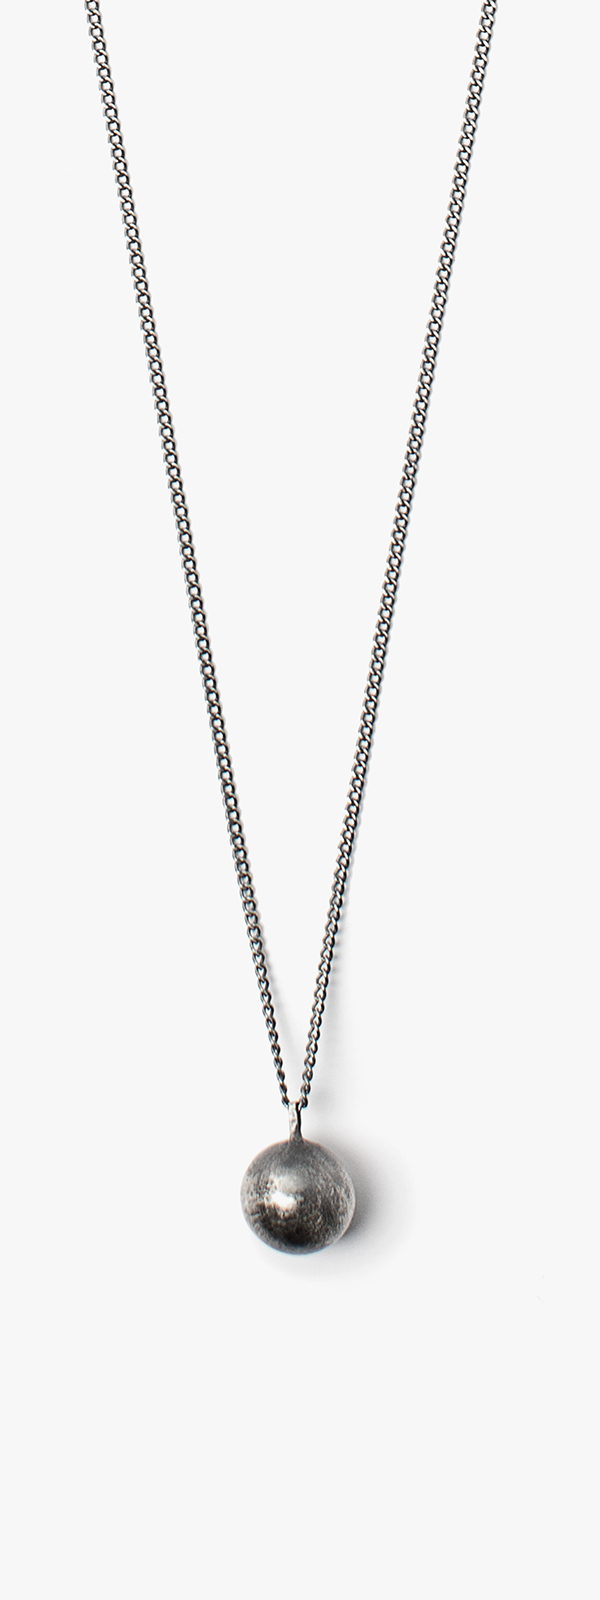 Image of Wrecking Ball Necklace 013